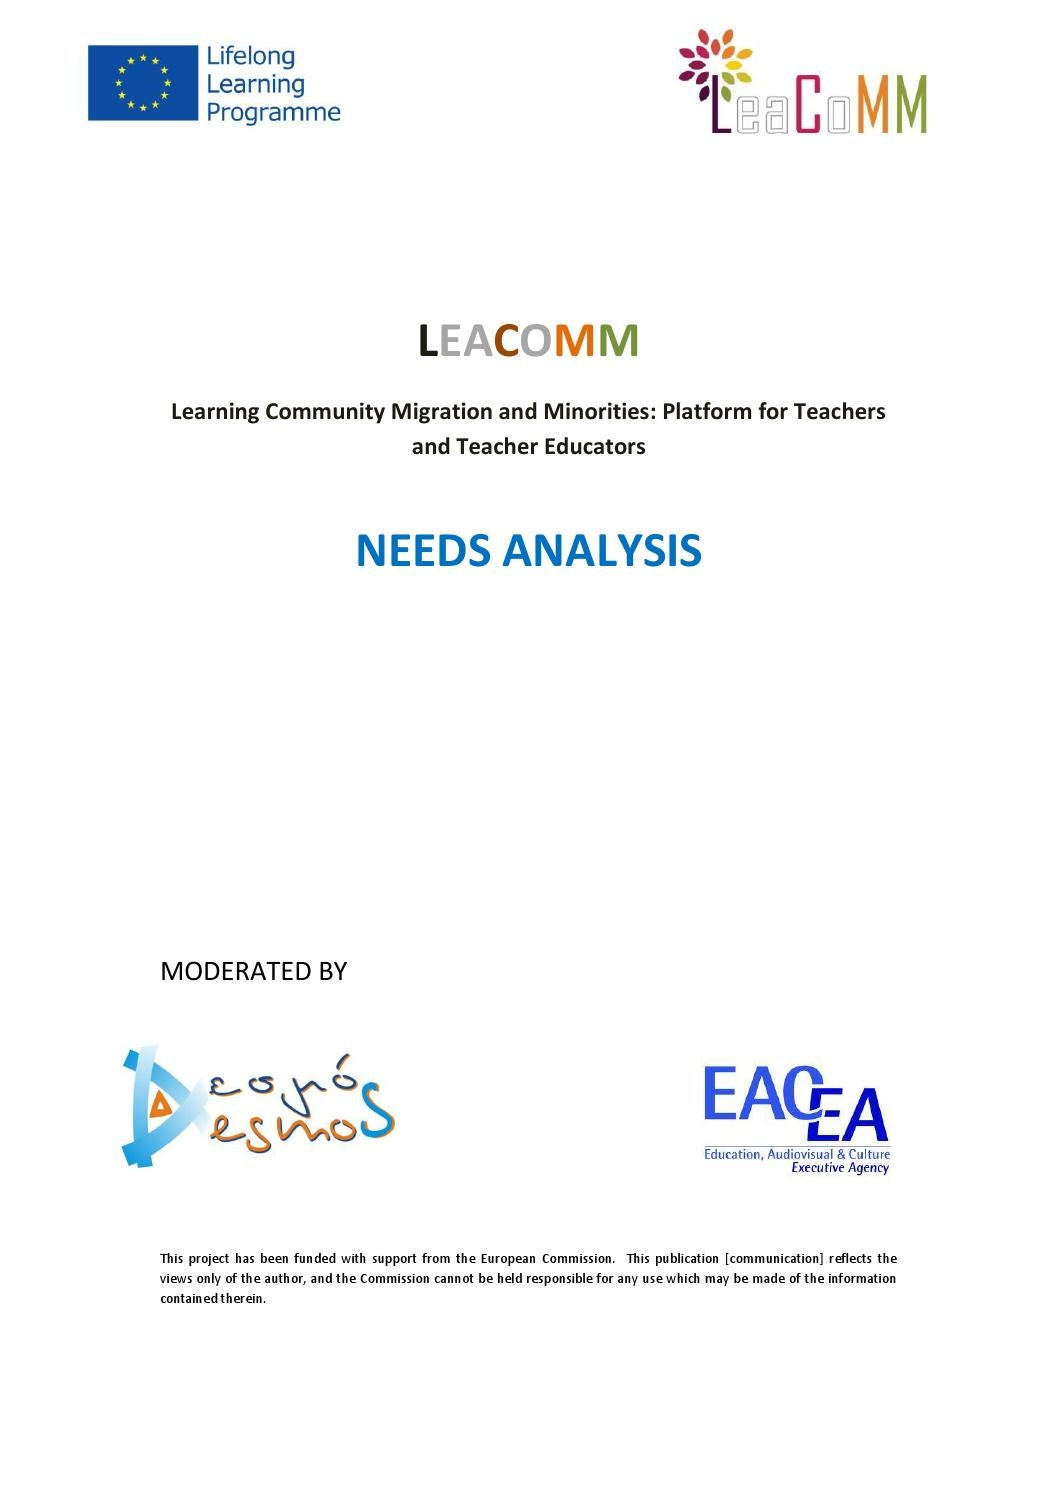 Leacomm final analysis report